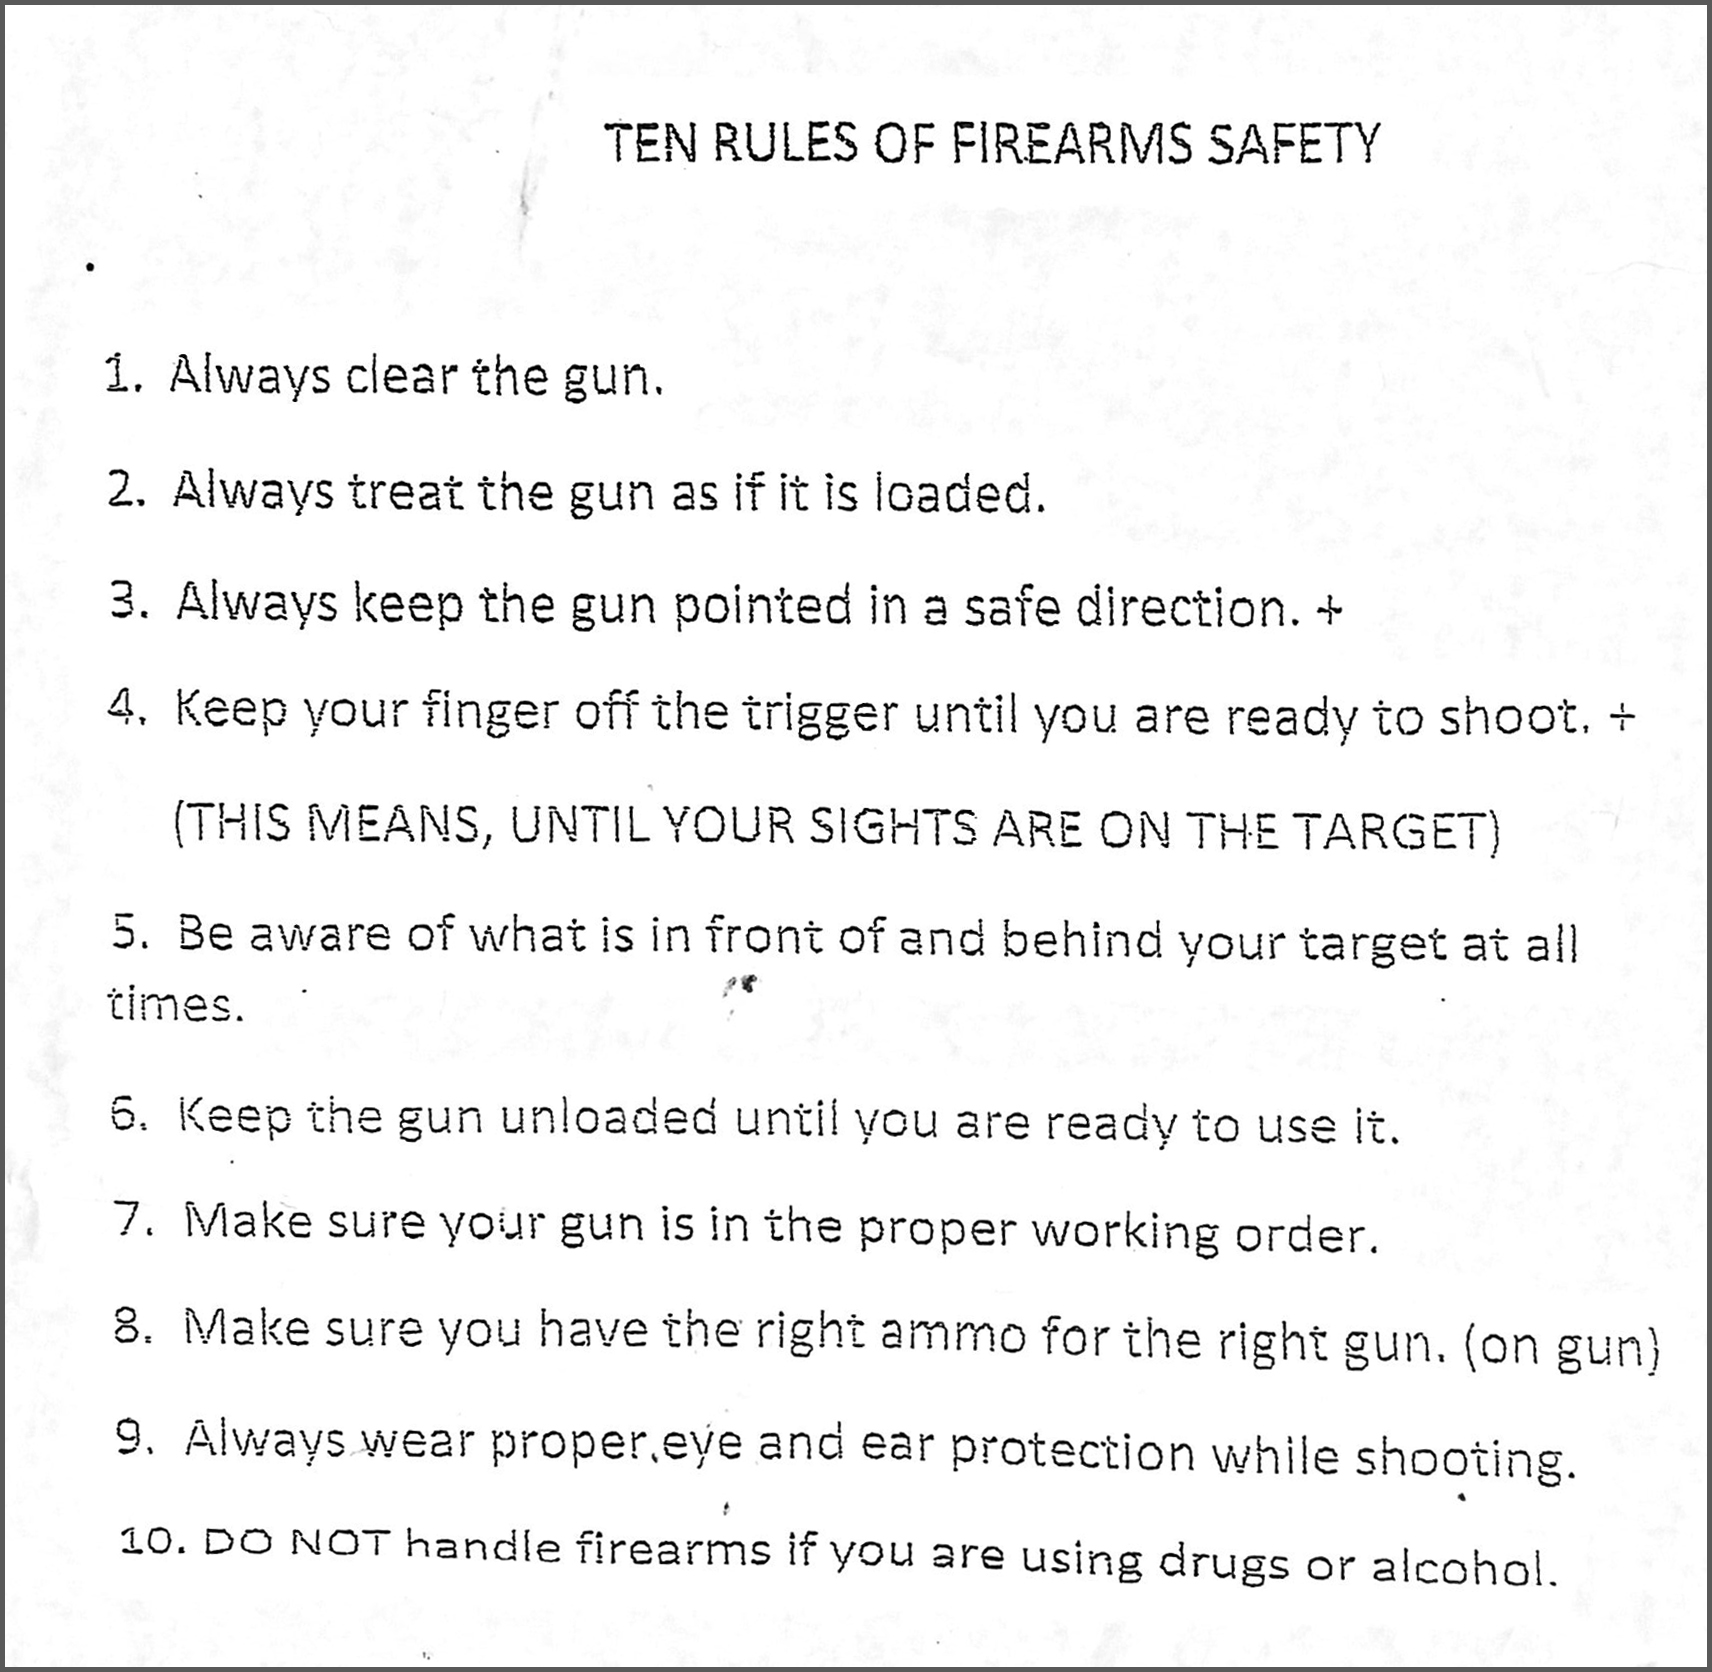 Ten rules of firesarms safety.jpg